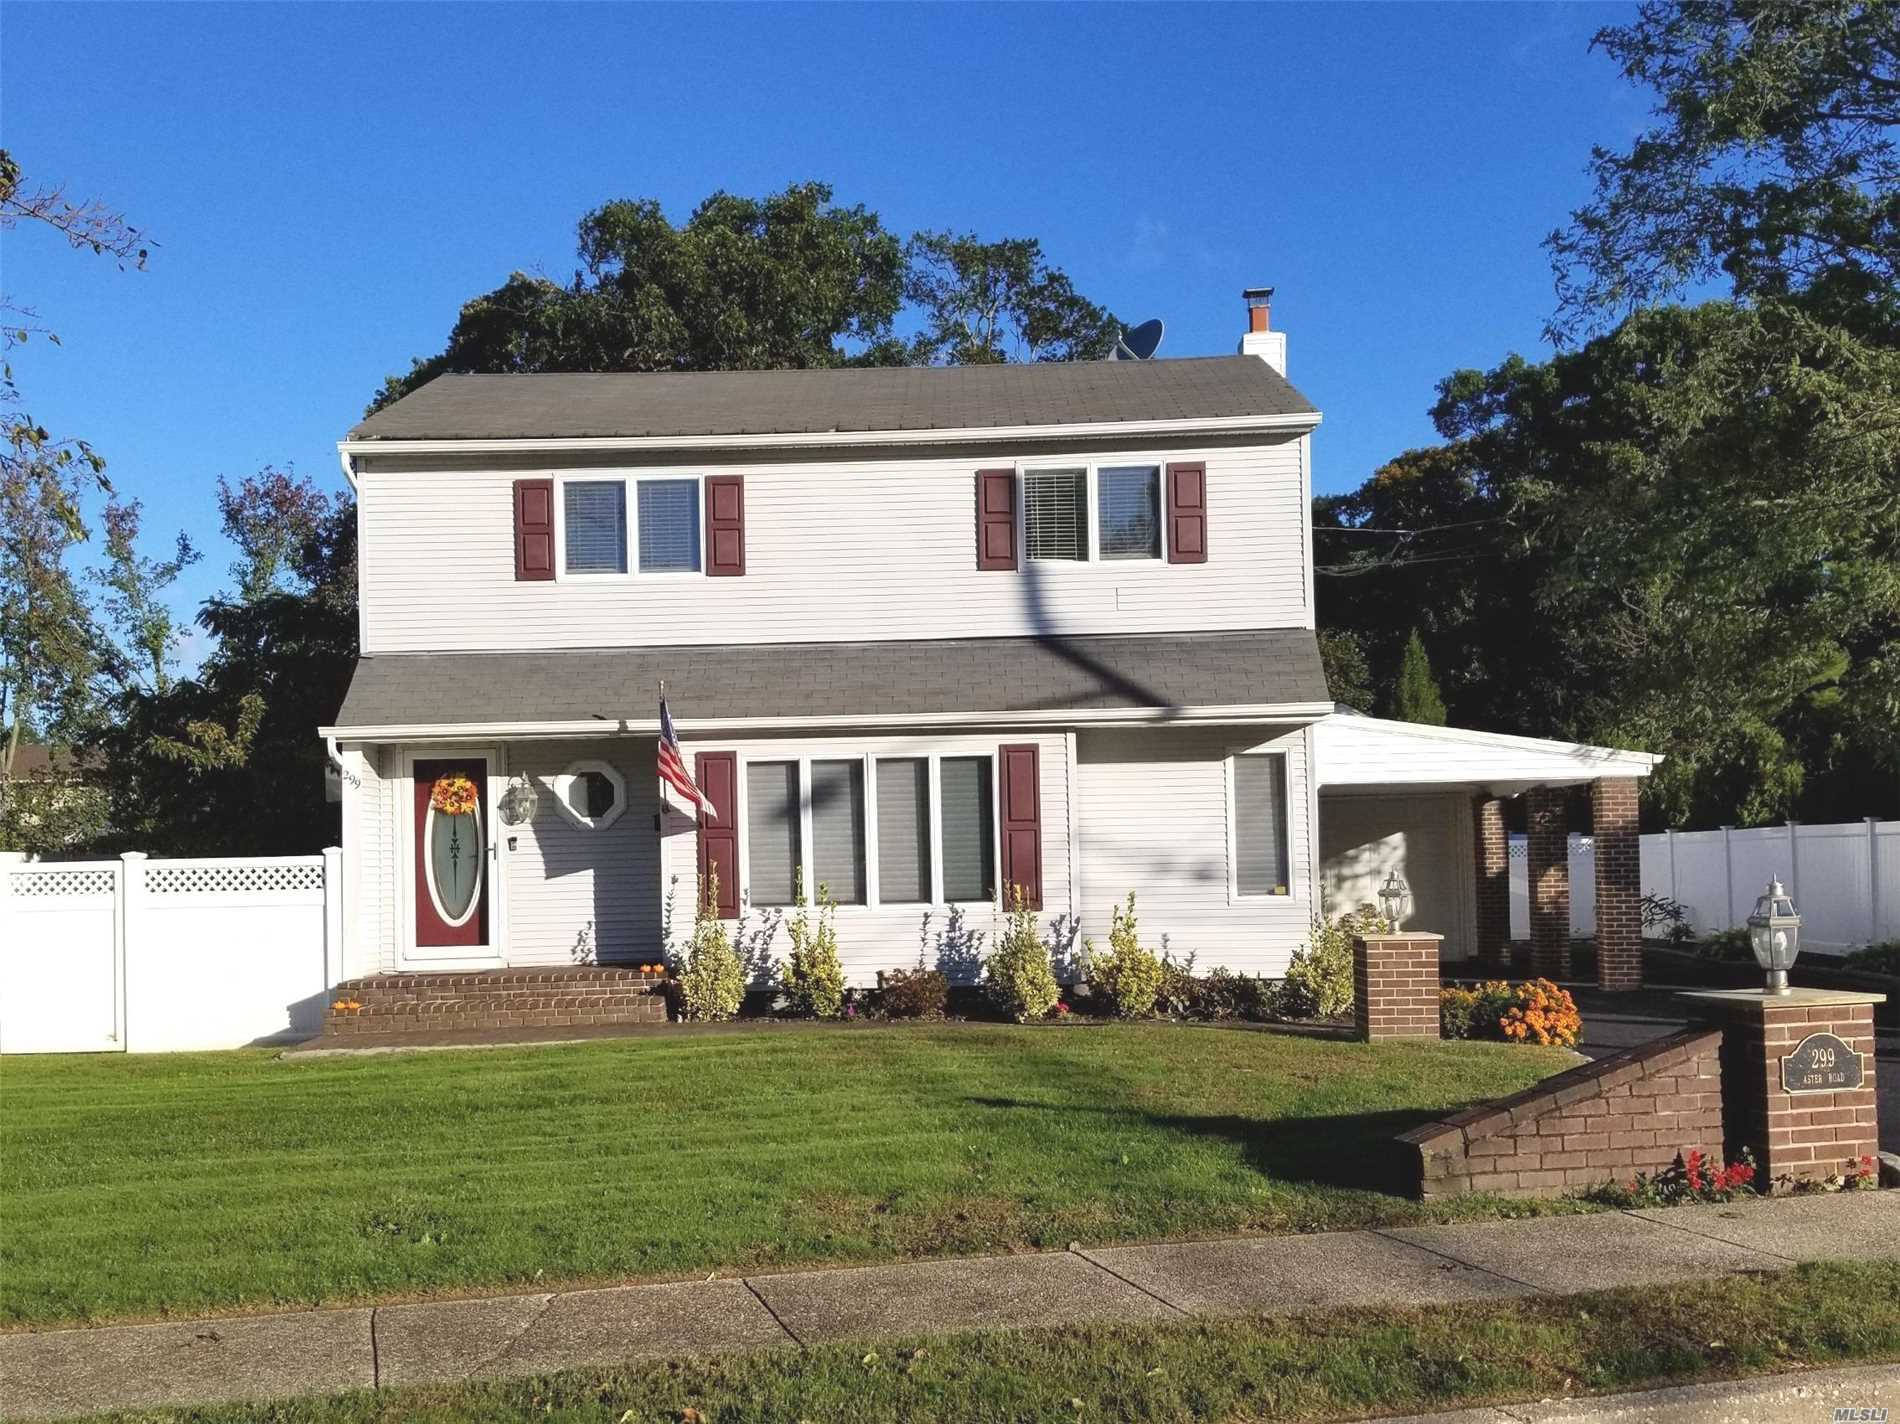 Spacious 4 Br Colonial Sitting On Beautifully Landcaped Property With New Pvc Fencing All Around! New Electrical Panel, Hw Heater, Patio, Ing Sprinklers, Appliances & More! This House Is A Must See!